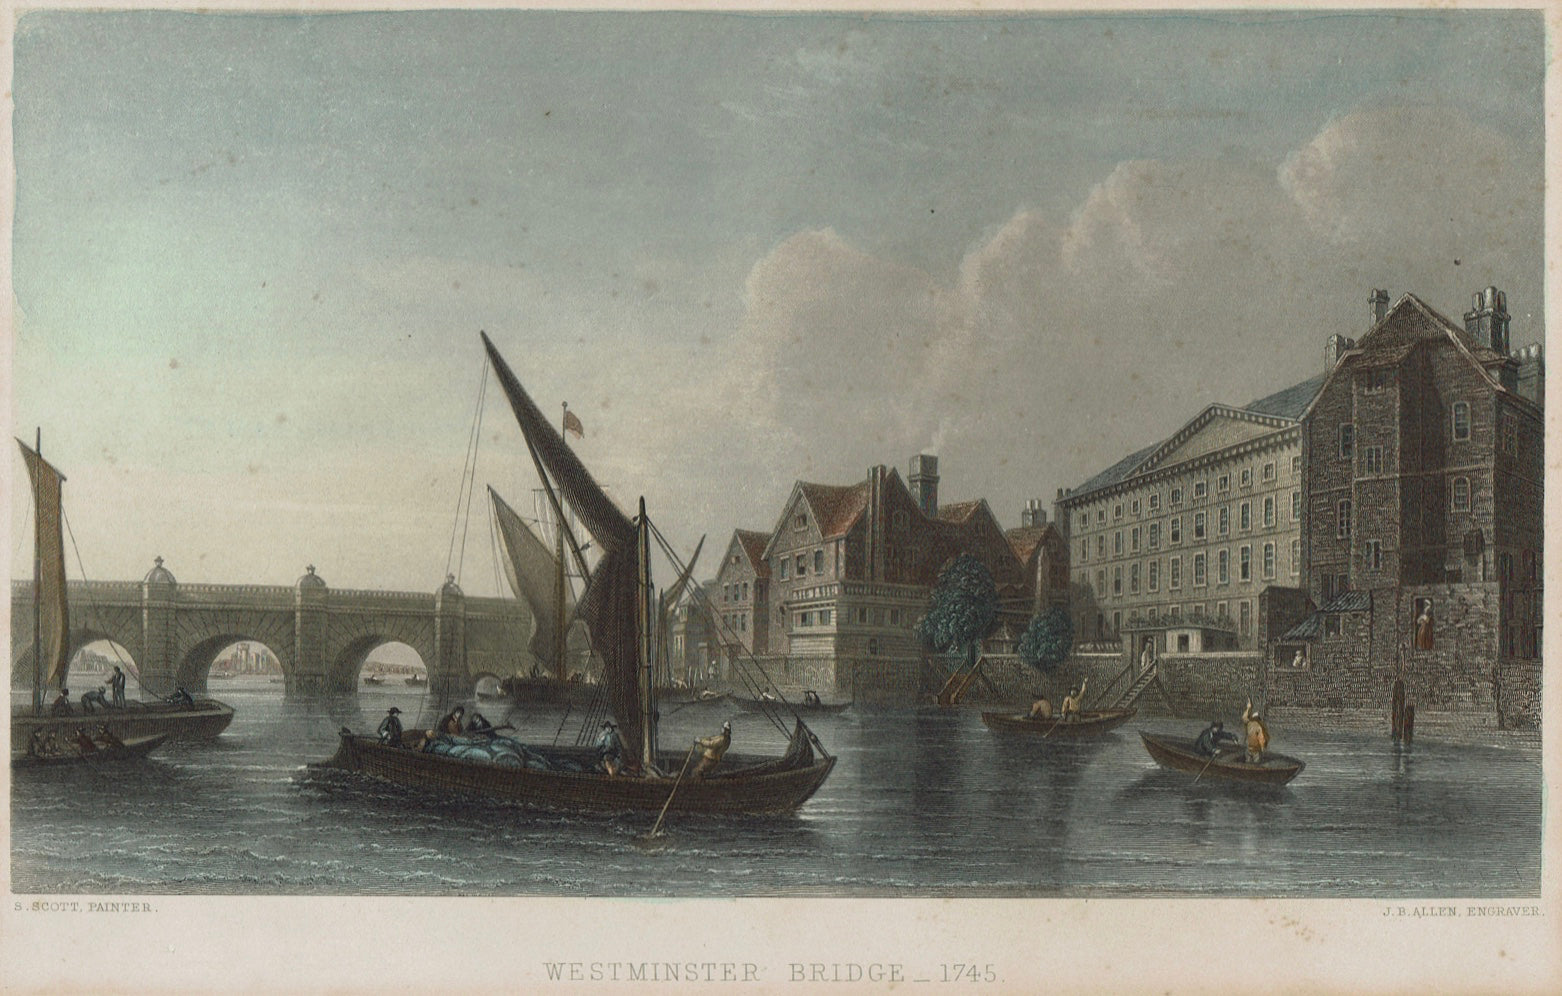 London - Westminster Bridge 1745